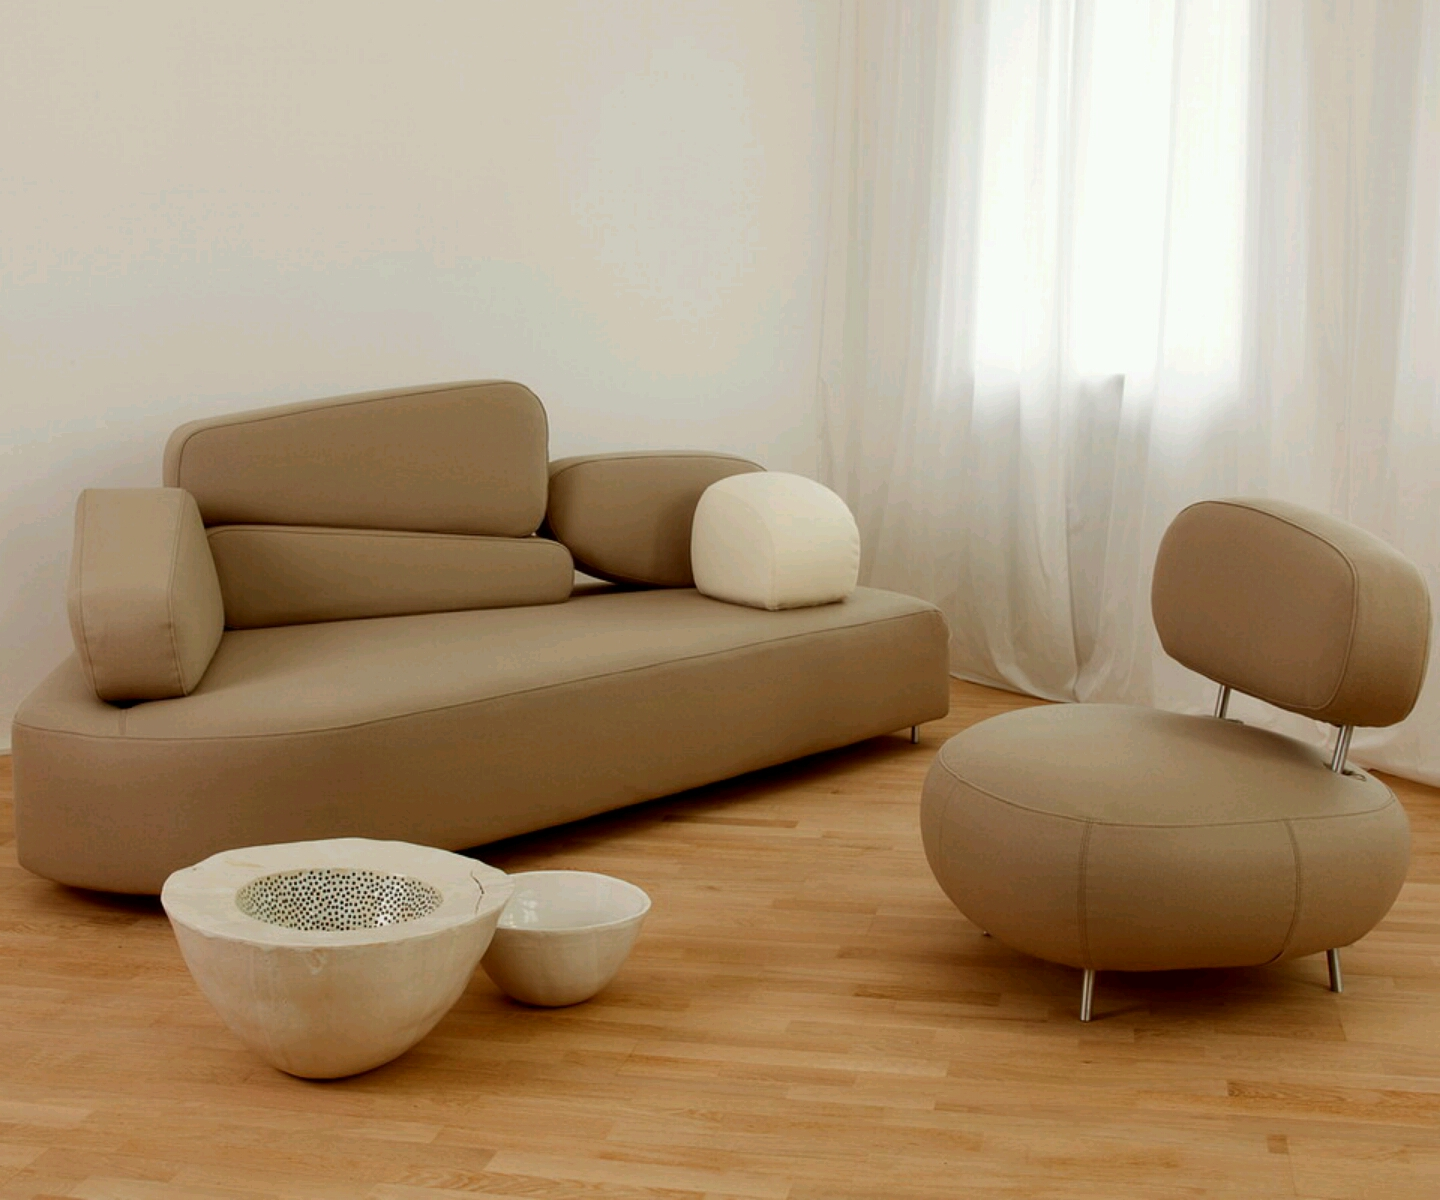 Beautiful modern sofa furniture designs an interior design - Furnitur design ...